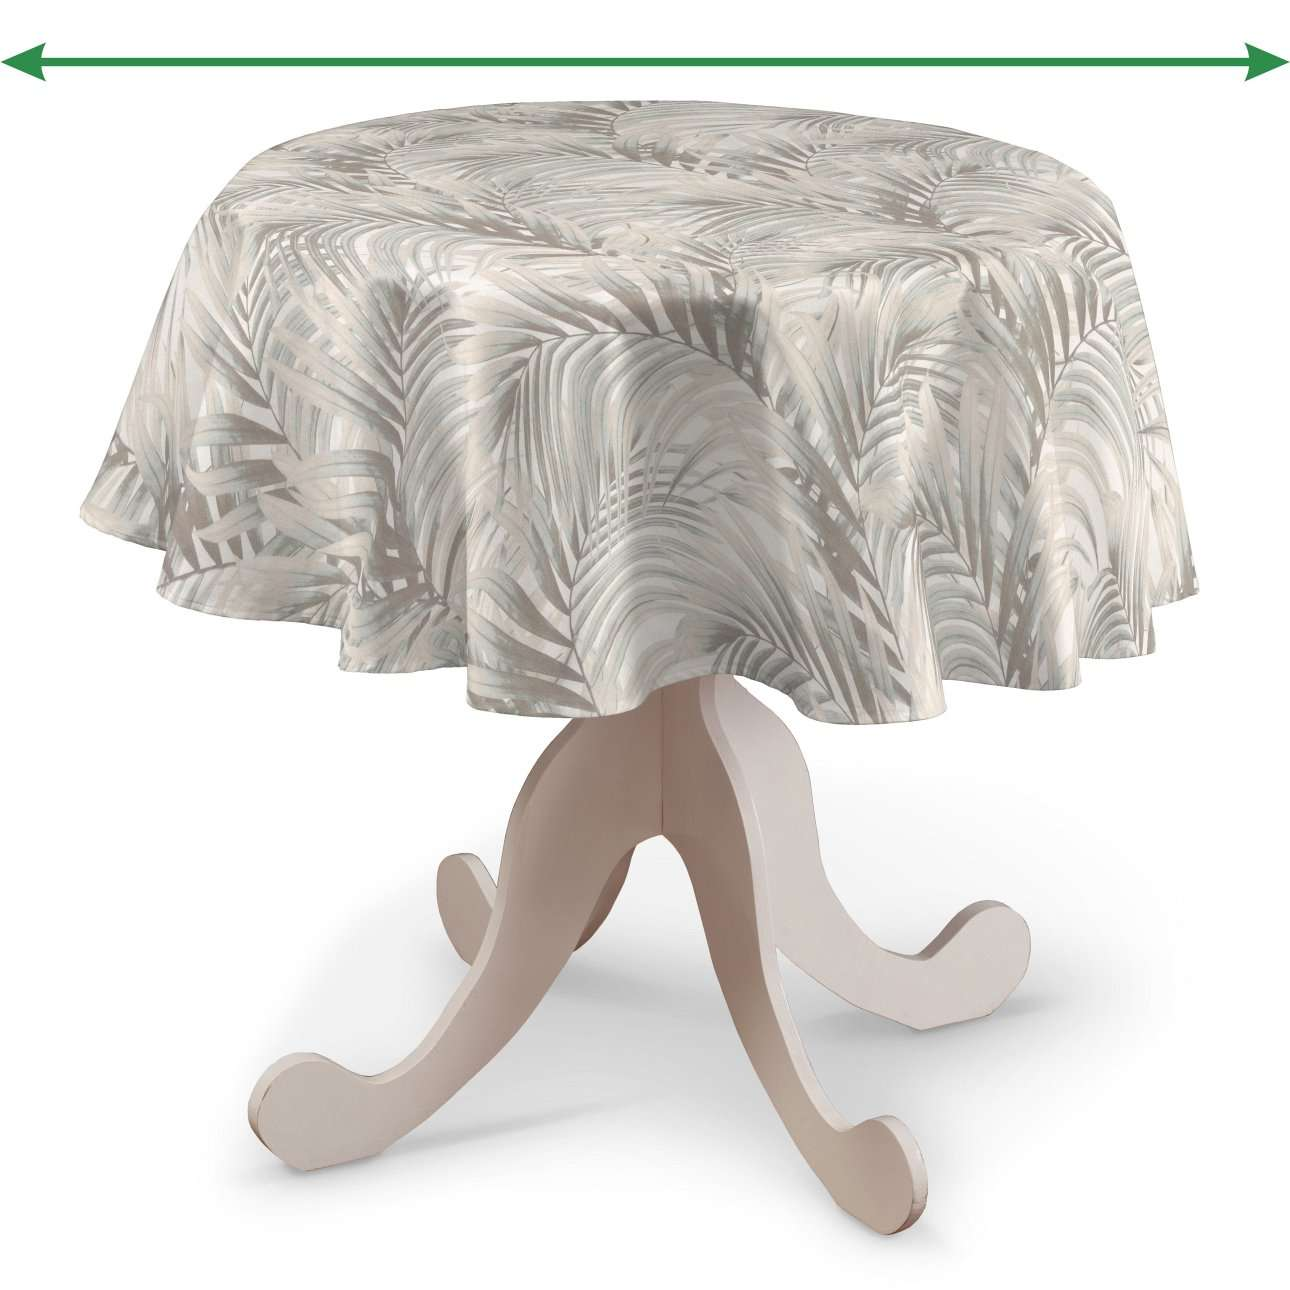 Round tablecloth in collection Gardenia, fabric: 142-14